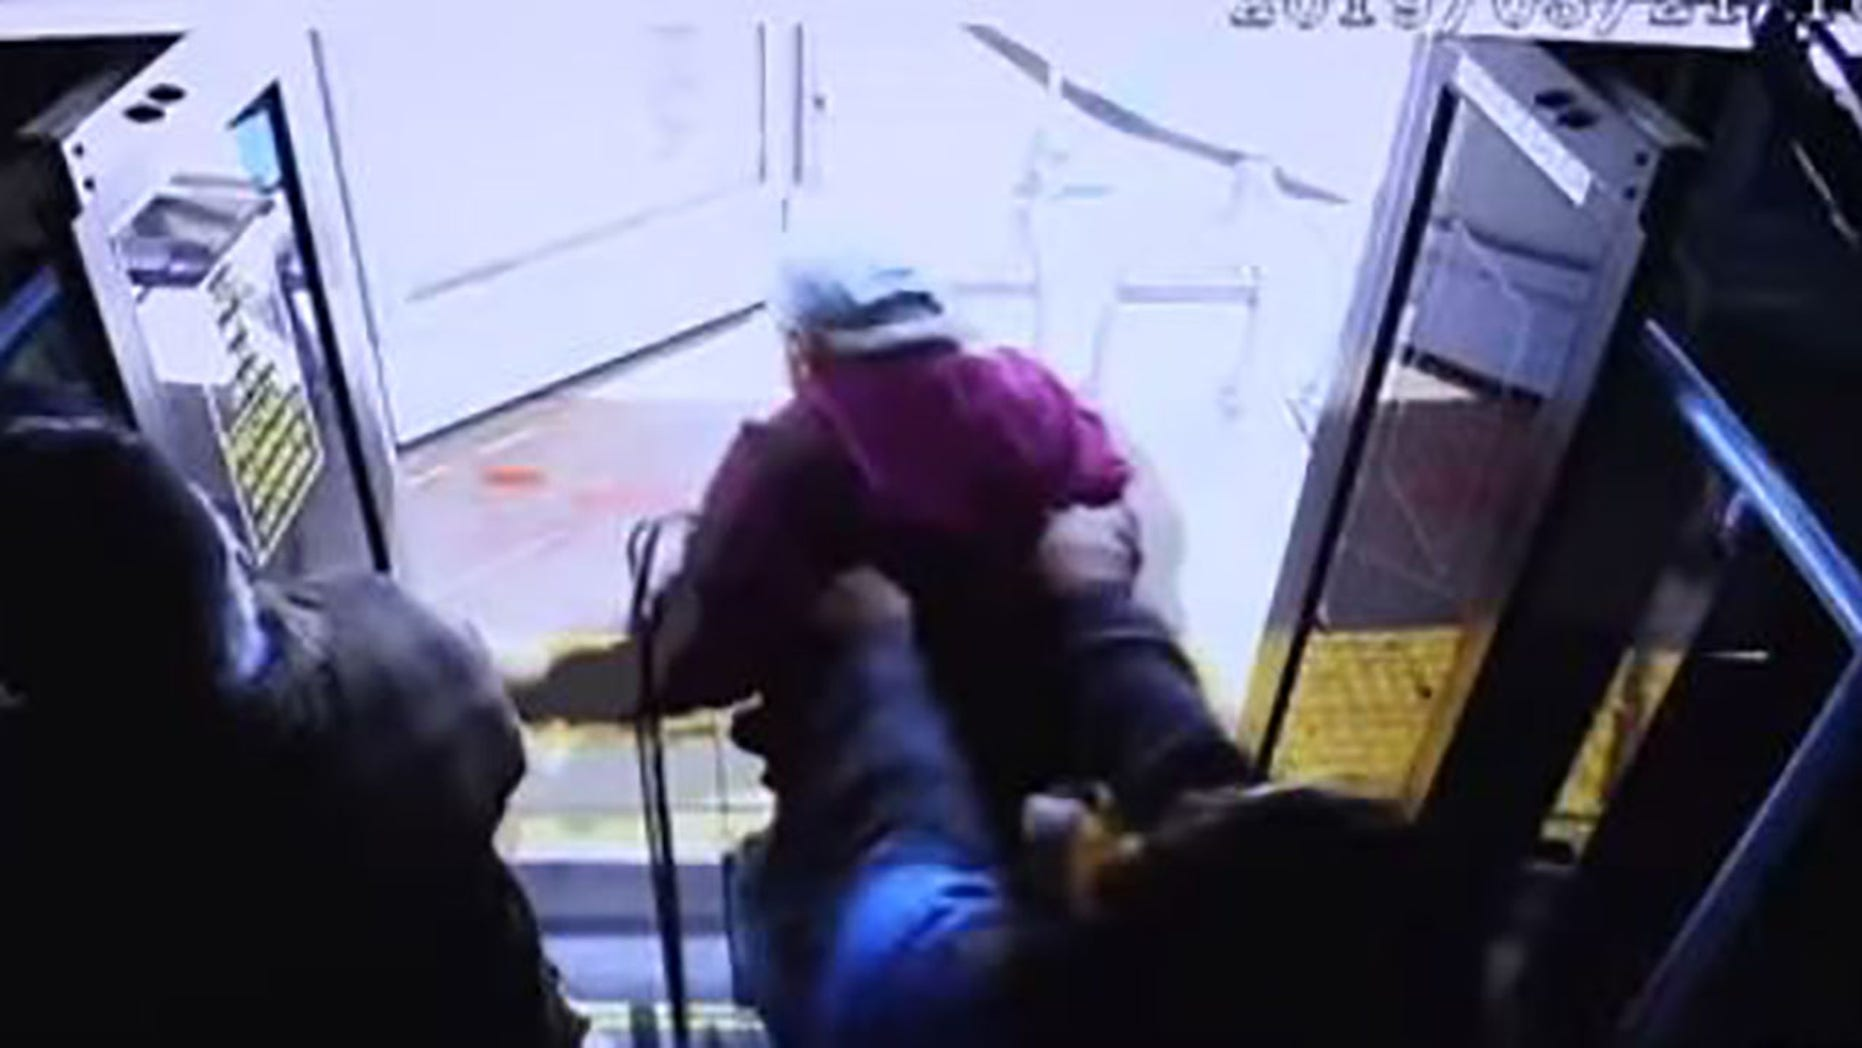 The surveillance video shows Bishop allegedly push Fournier out of the door of the stopped bus.